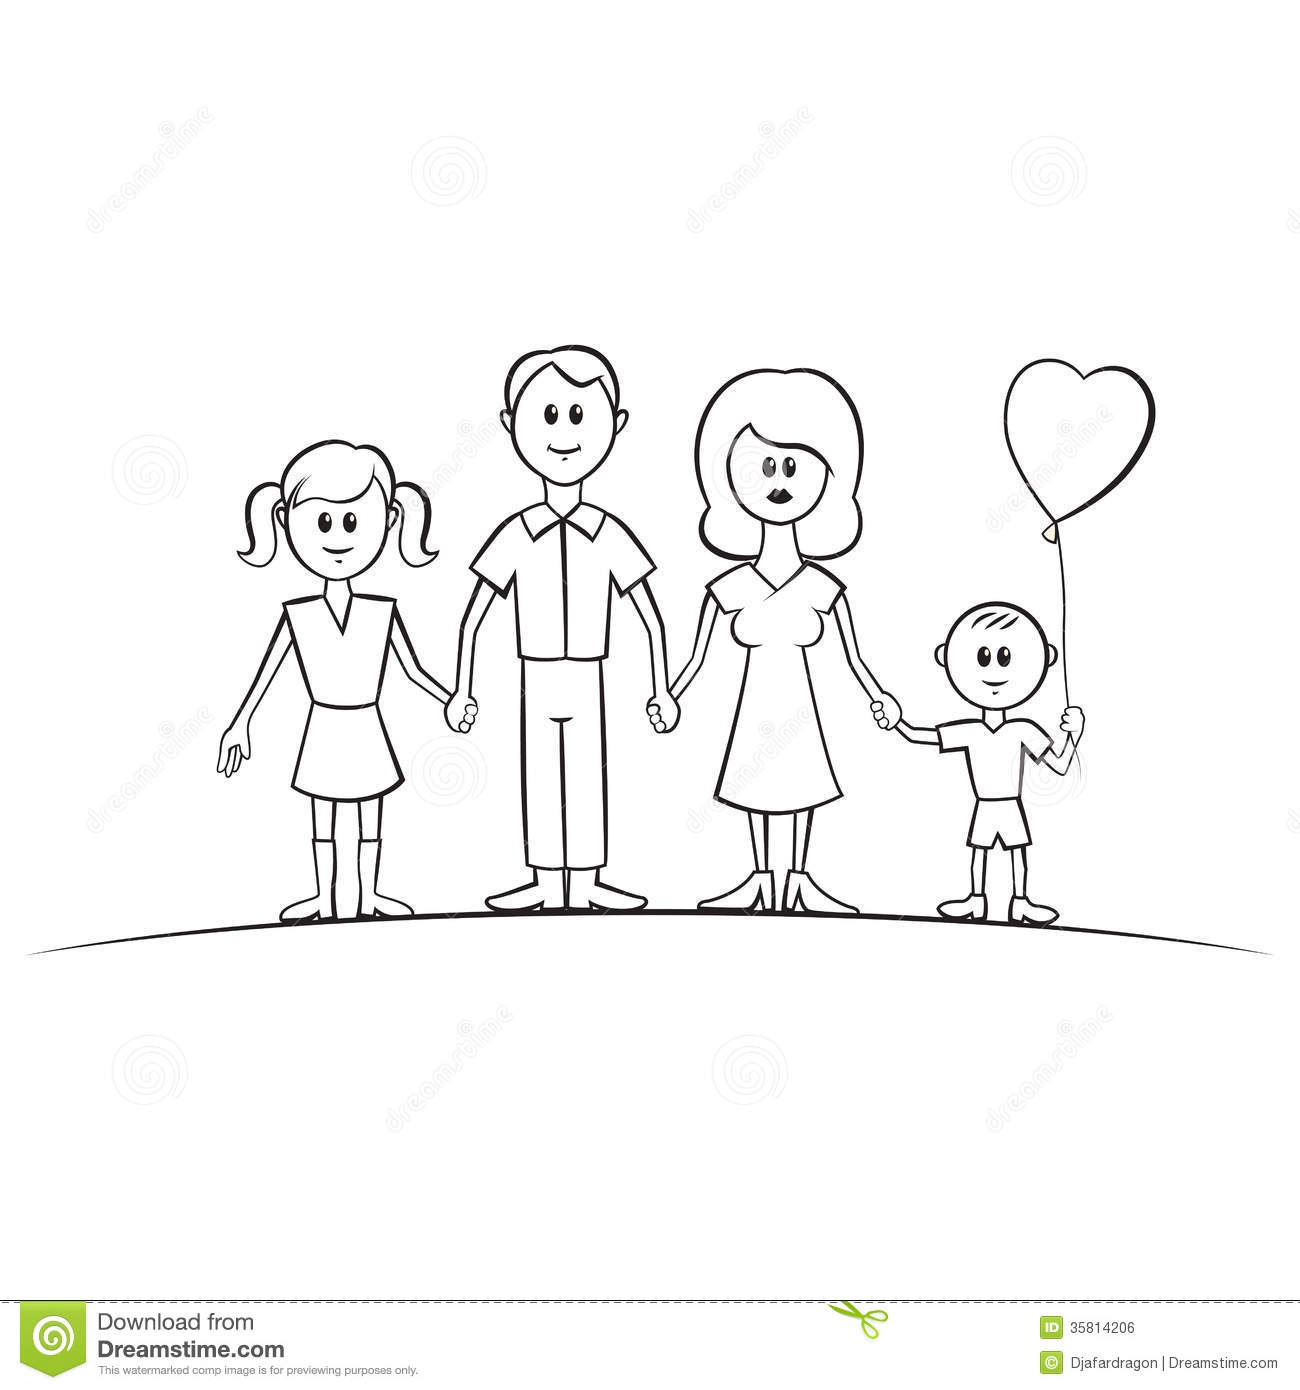 Funny Cartoon Vector Family Royalty Free Stock Image